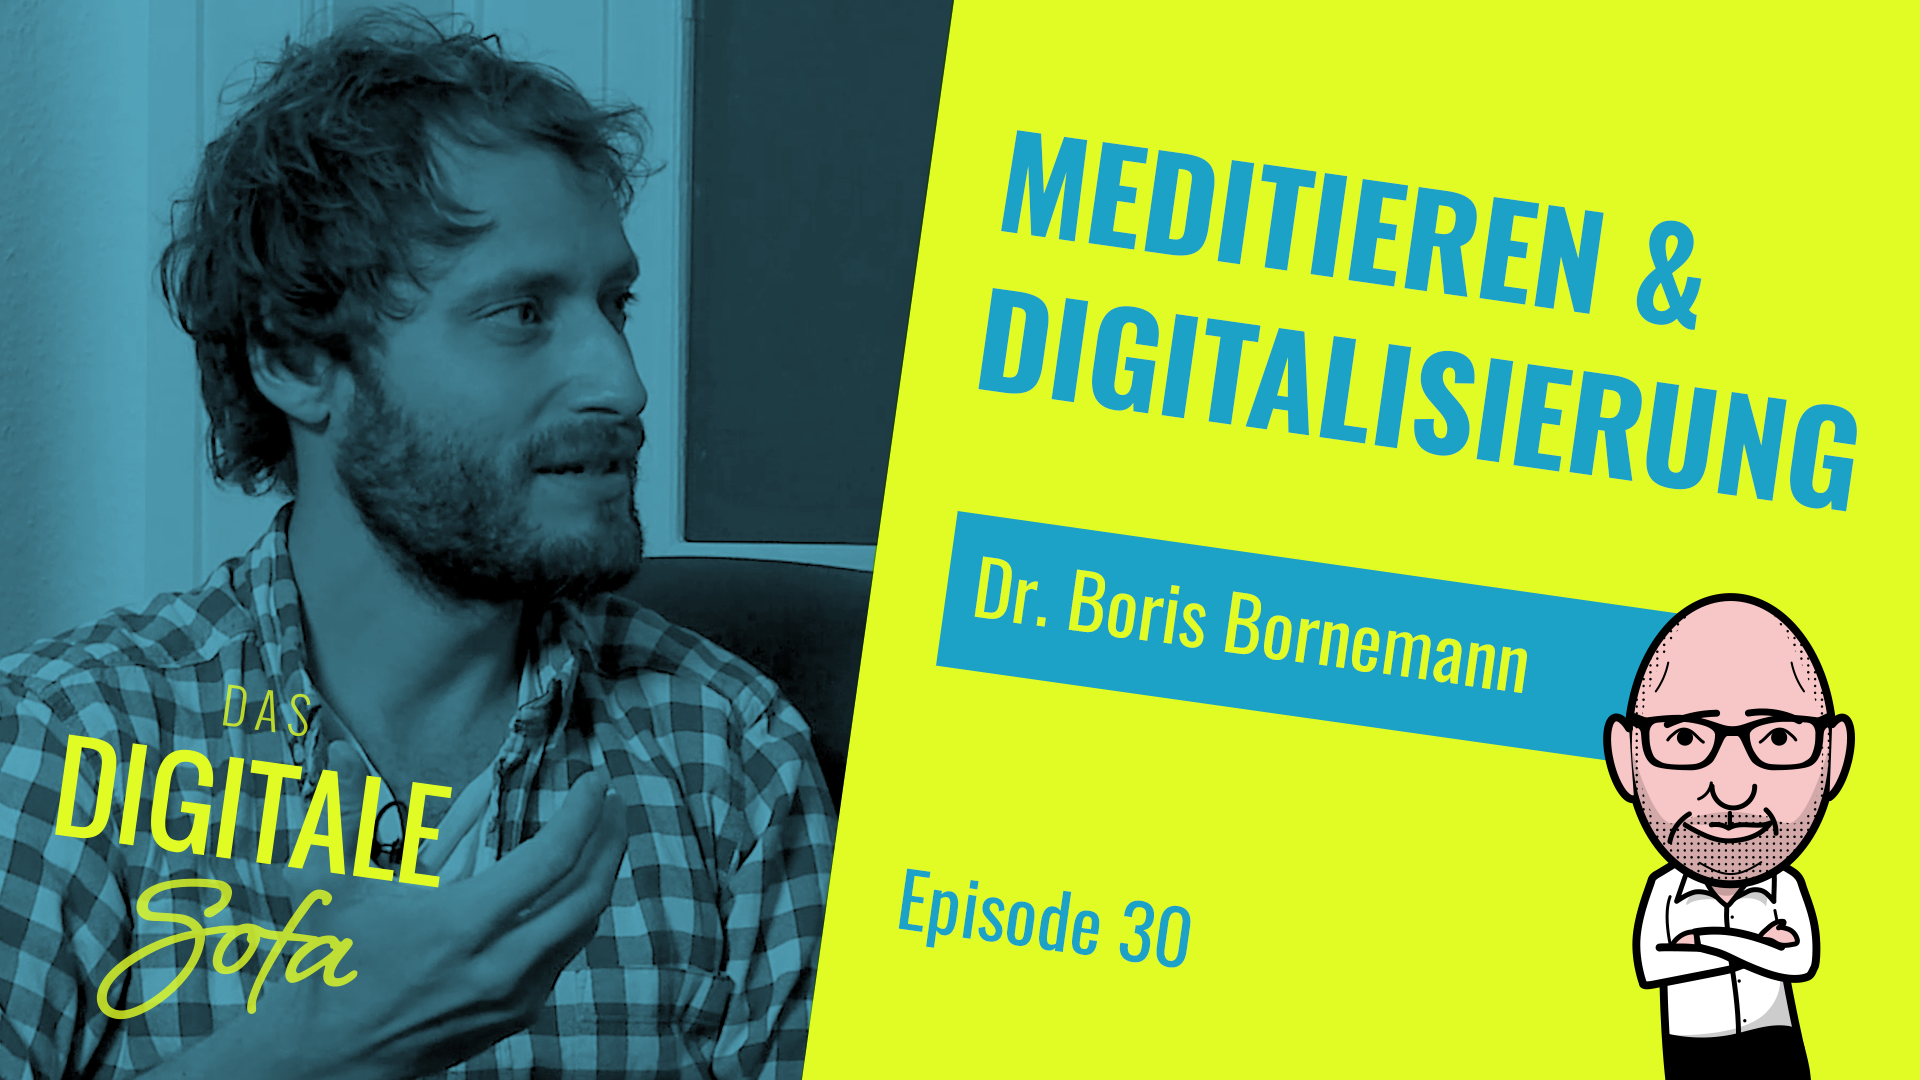 Meditation & Digitalization – Das Digitale Sofa #30 with Dr. Boris Bornemann